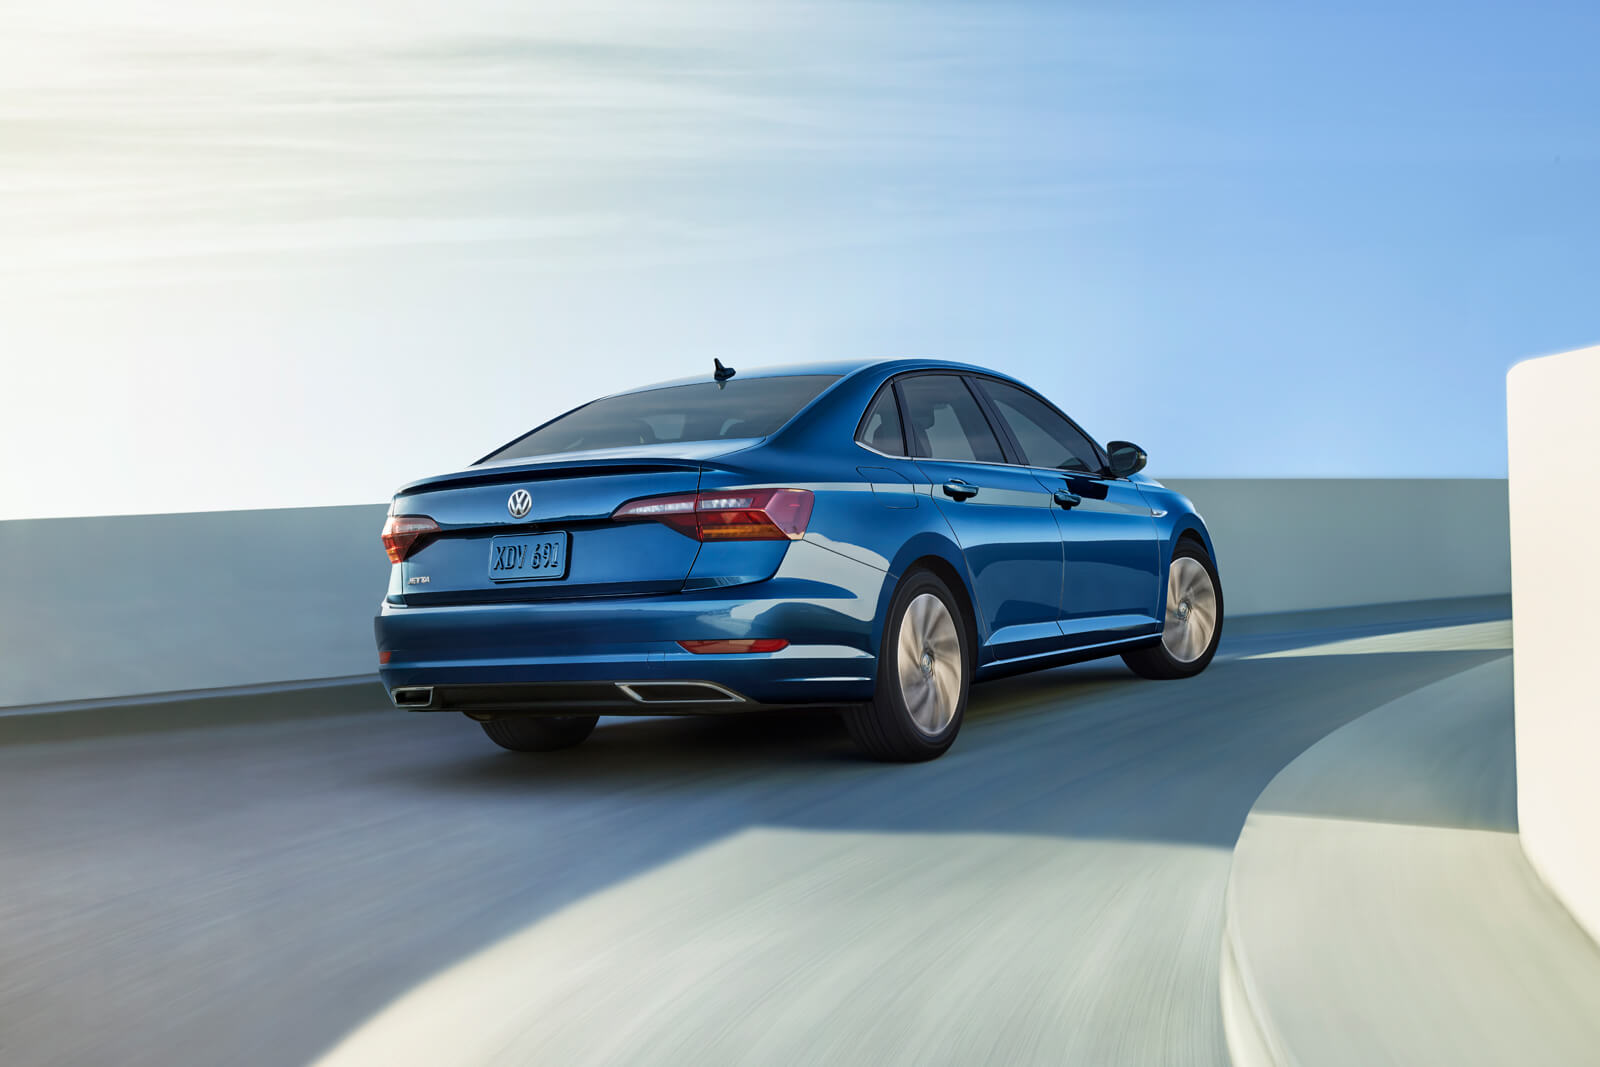 blue 2019 volkswage jetta driving up a ramp